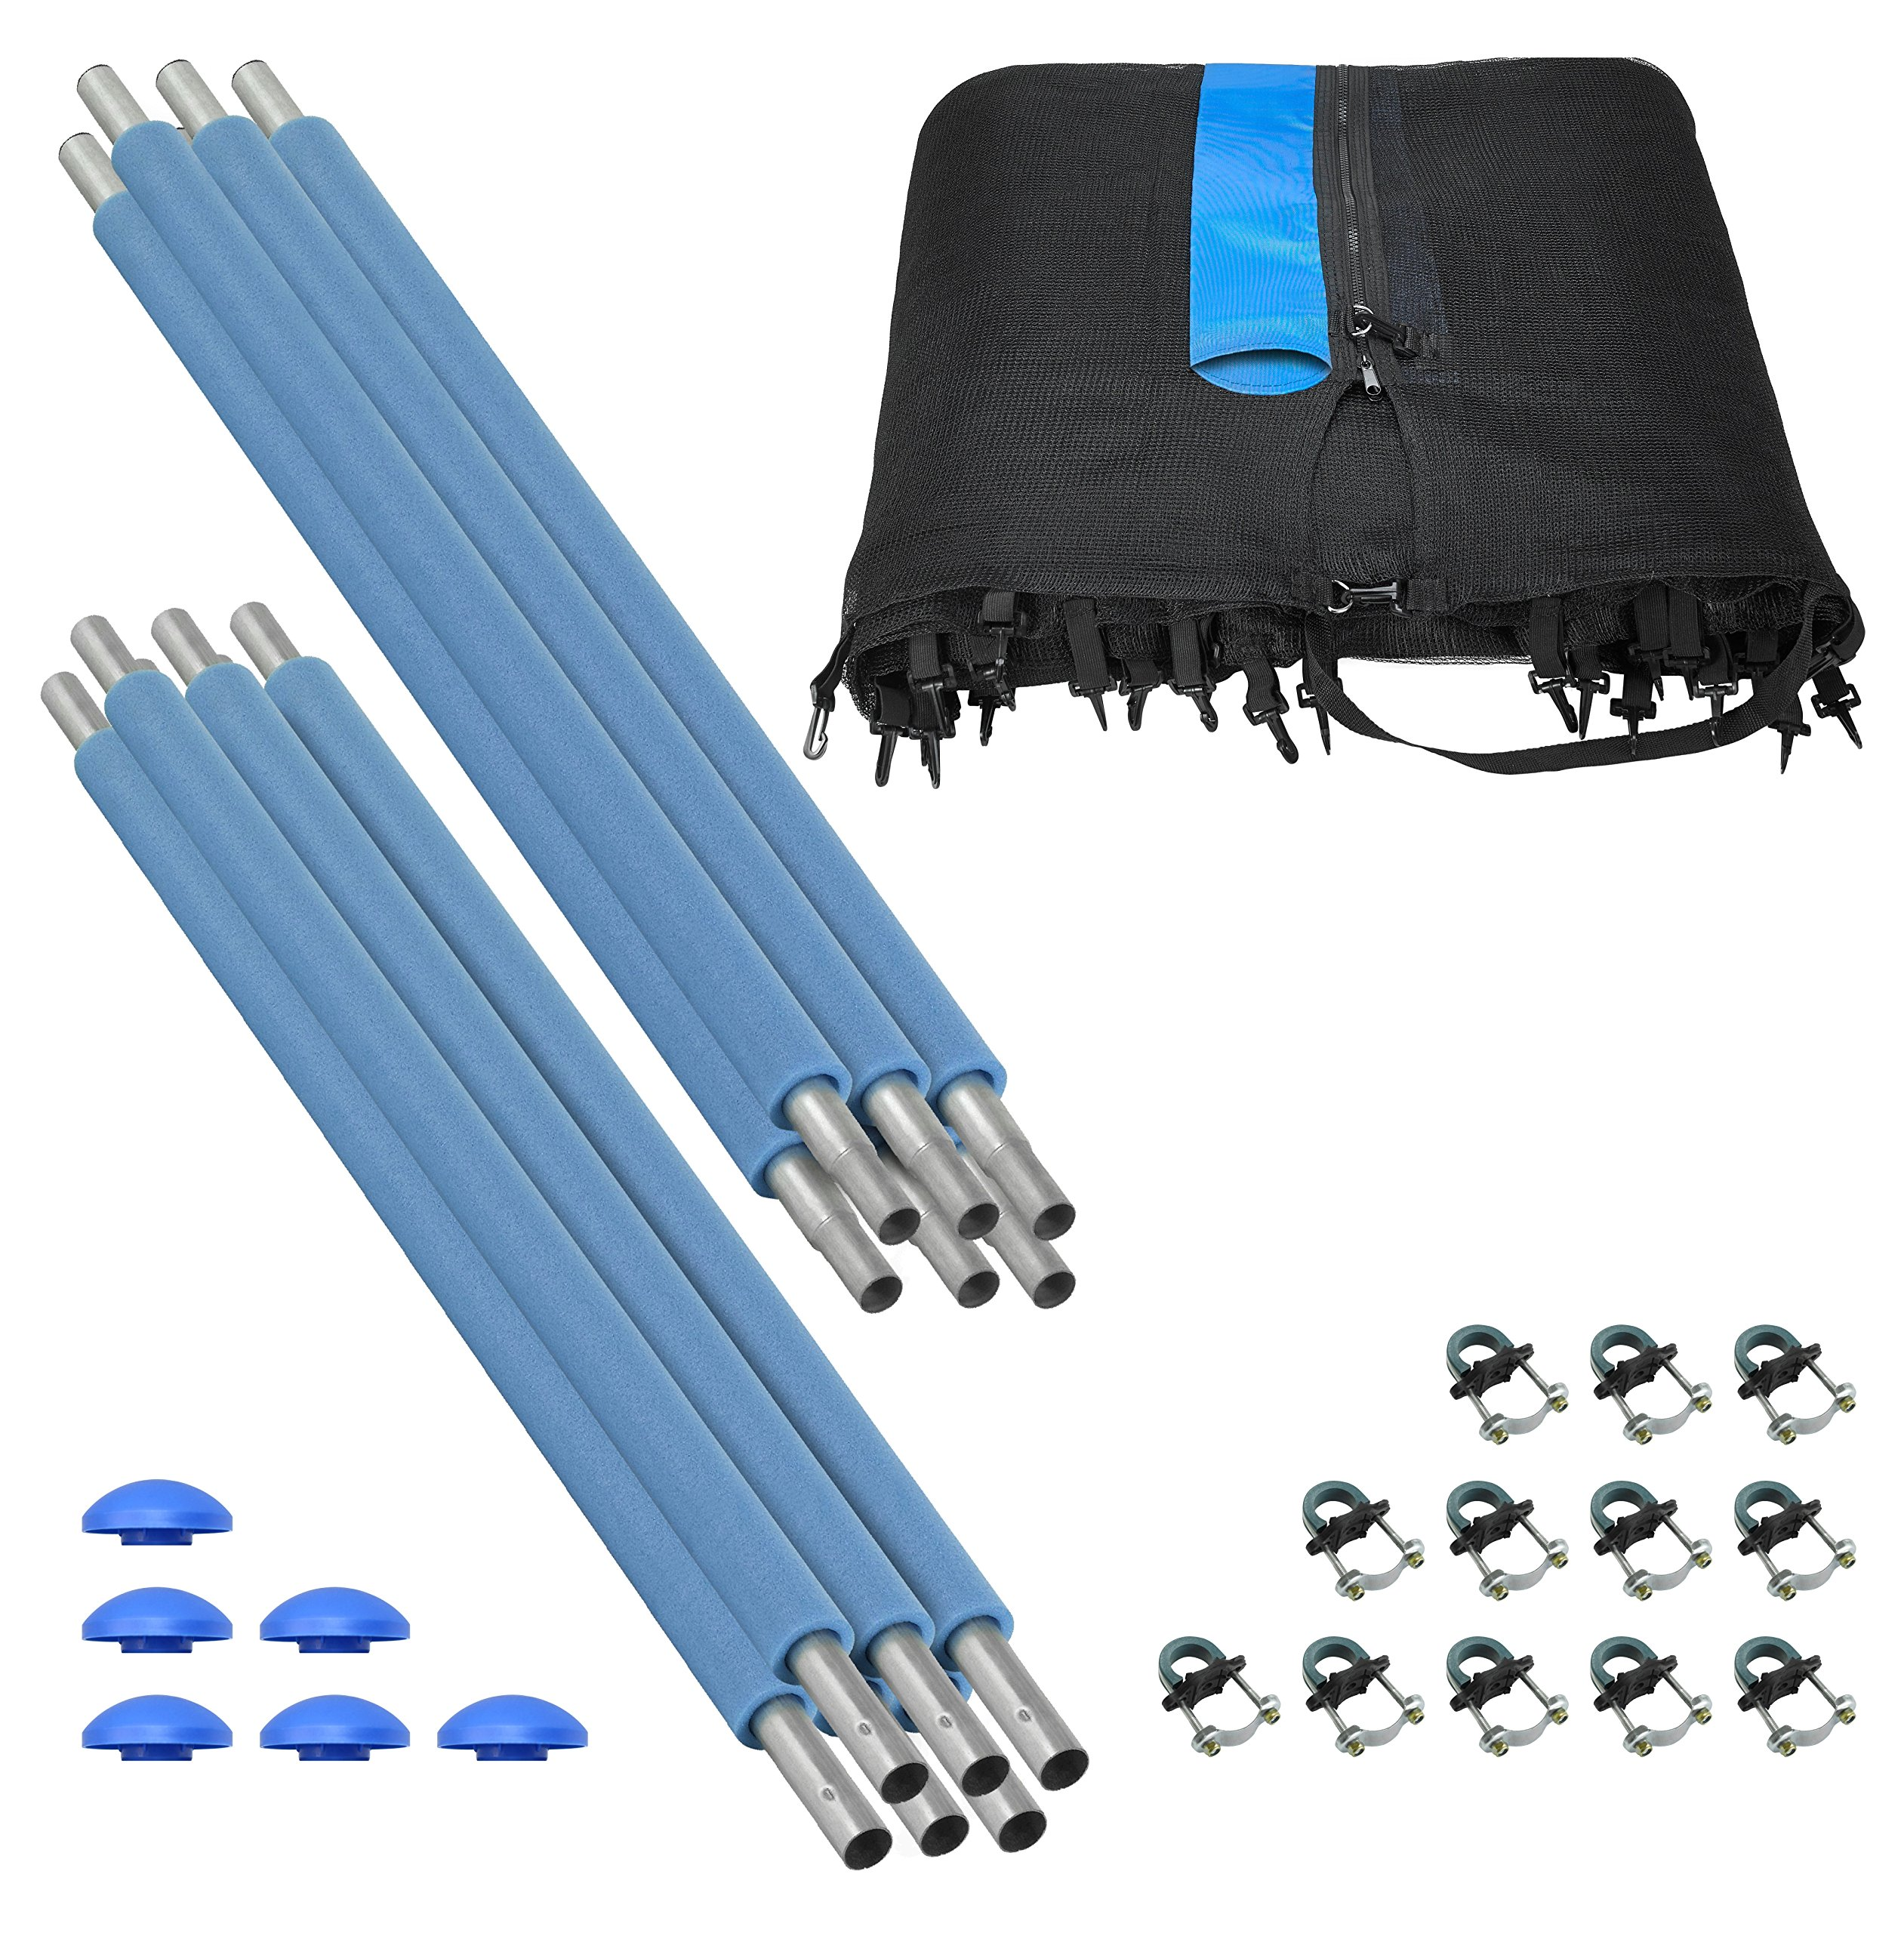 Upper Bounce 6 Pole Trampoline Enclosure Set to fit 14 FT. Trampoline Frames with Set of 3 or 6 W-Shaped Legs (Trampoline Not Included)